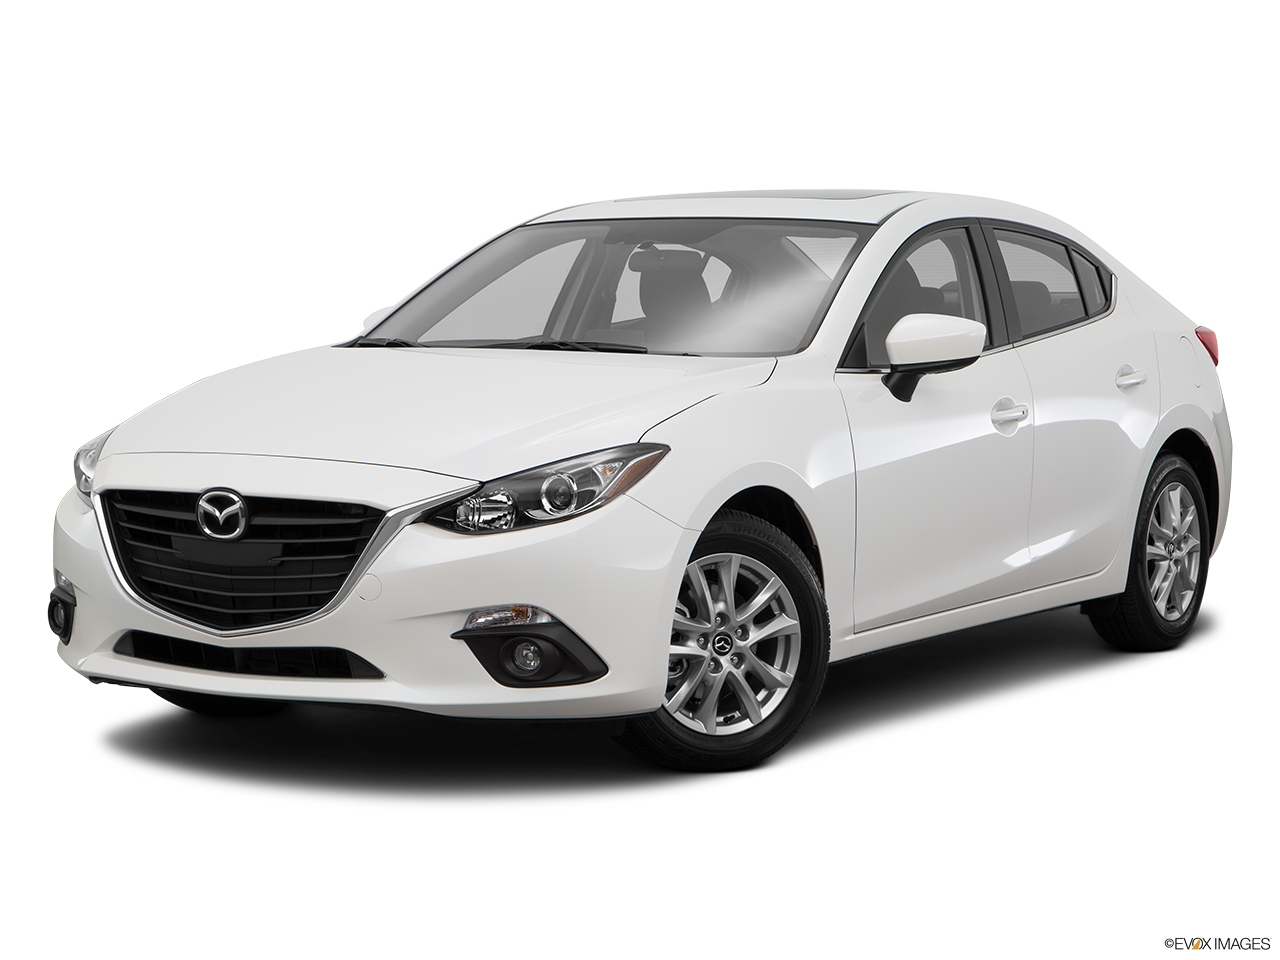 Test Drive A 2016 Mazda3 5-Door at Galpin Mazda in Los Angeles